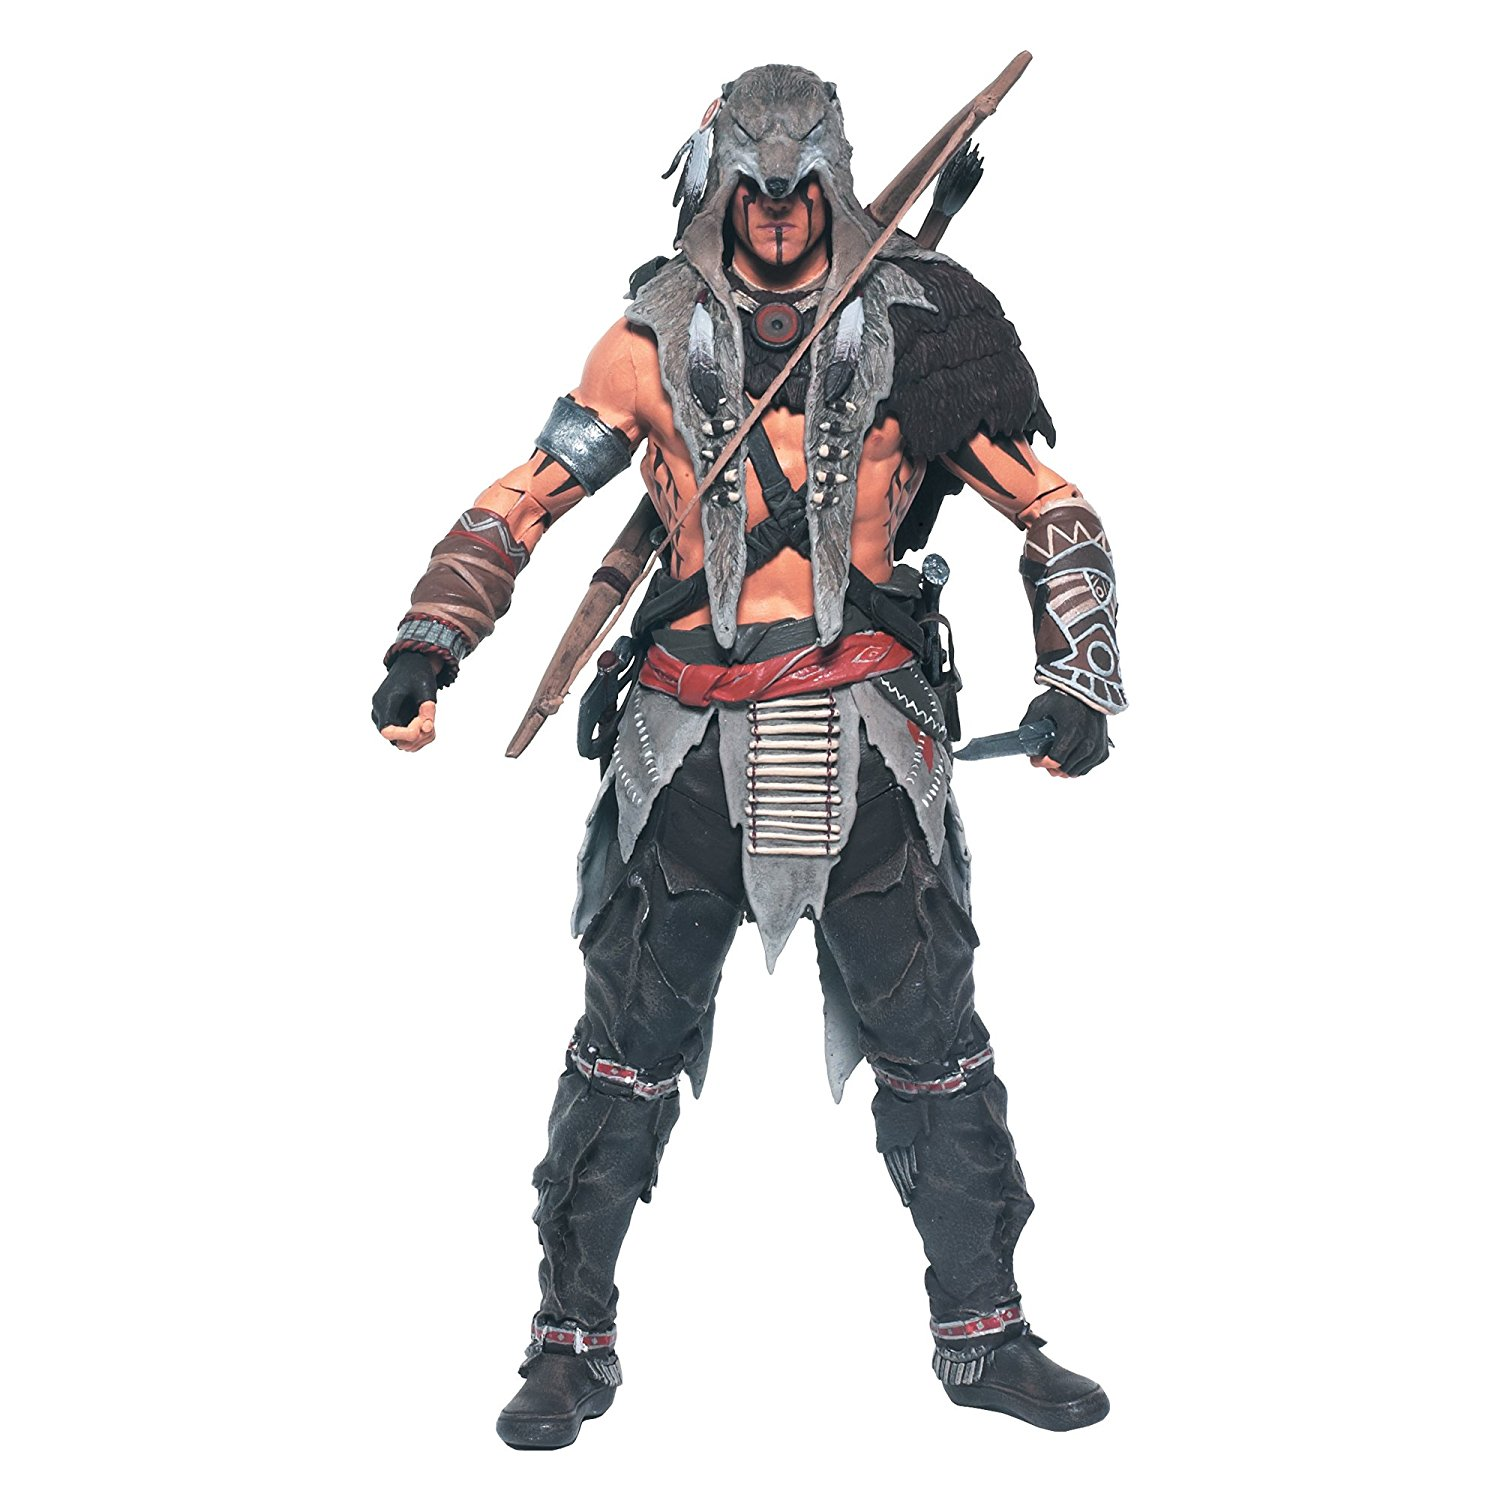 Toys Assassin's Creed Ratonhnhake Ton Action Figure, Figure features 25 points of articulation By McFarlane